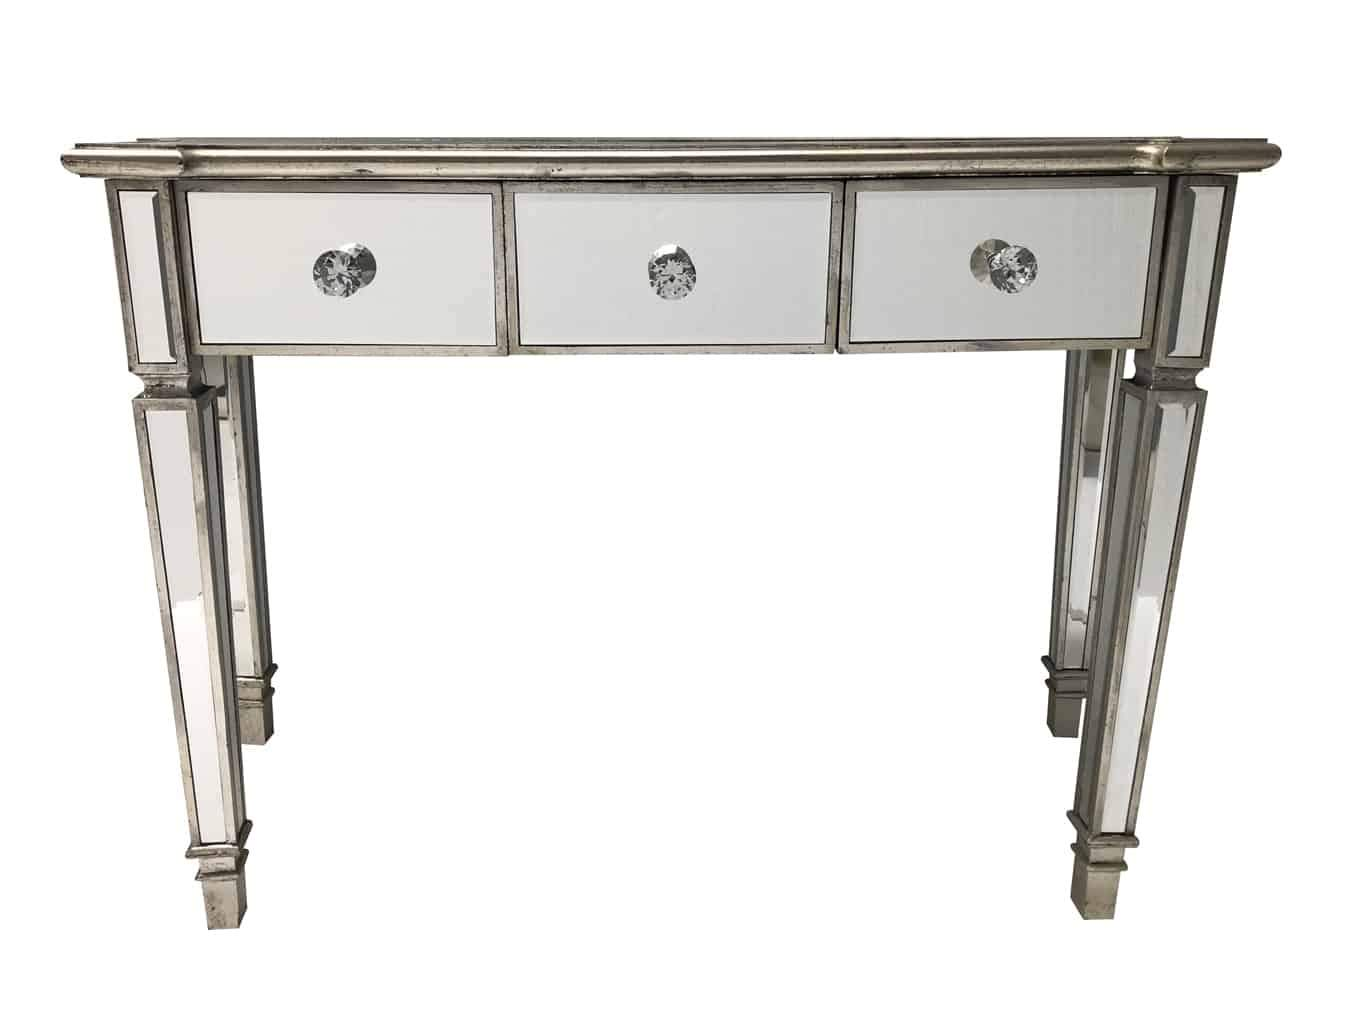 Mirrored Console Dressing Table TV Stand 1 Drawer White Modern Glass Furniture